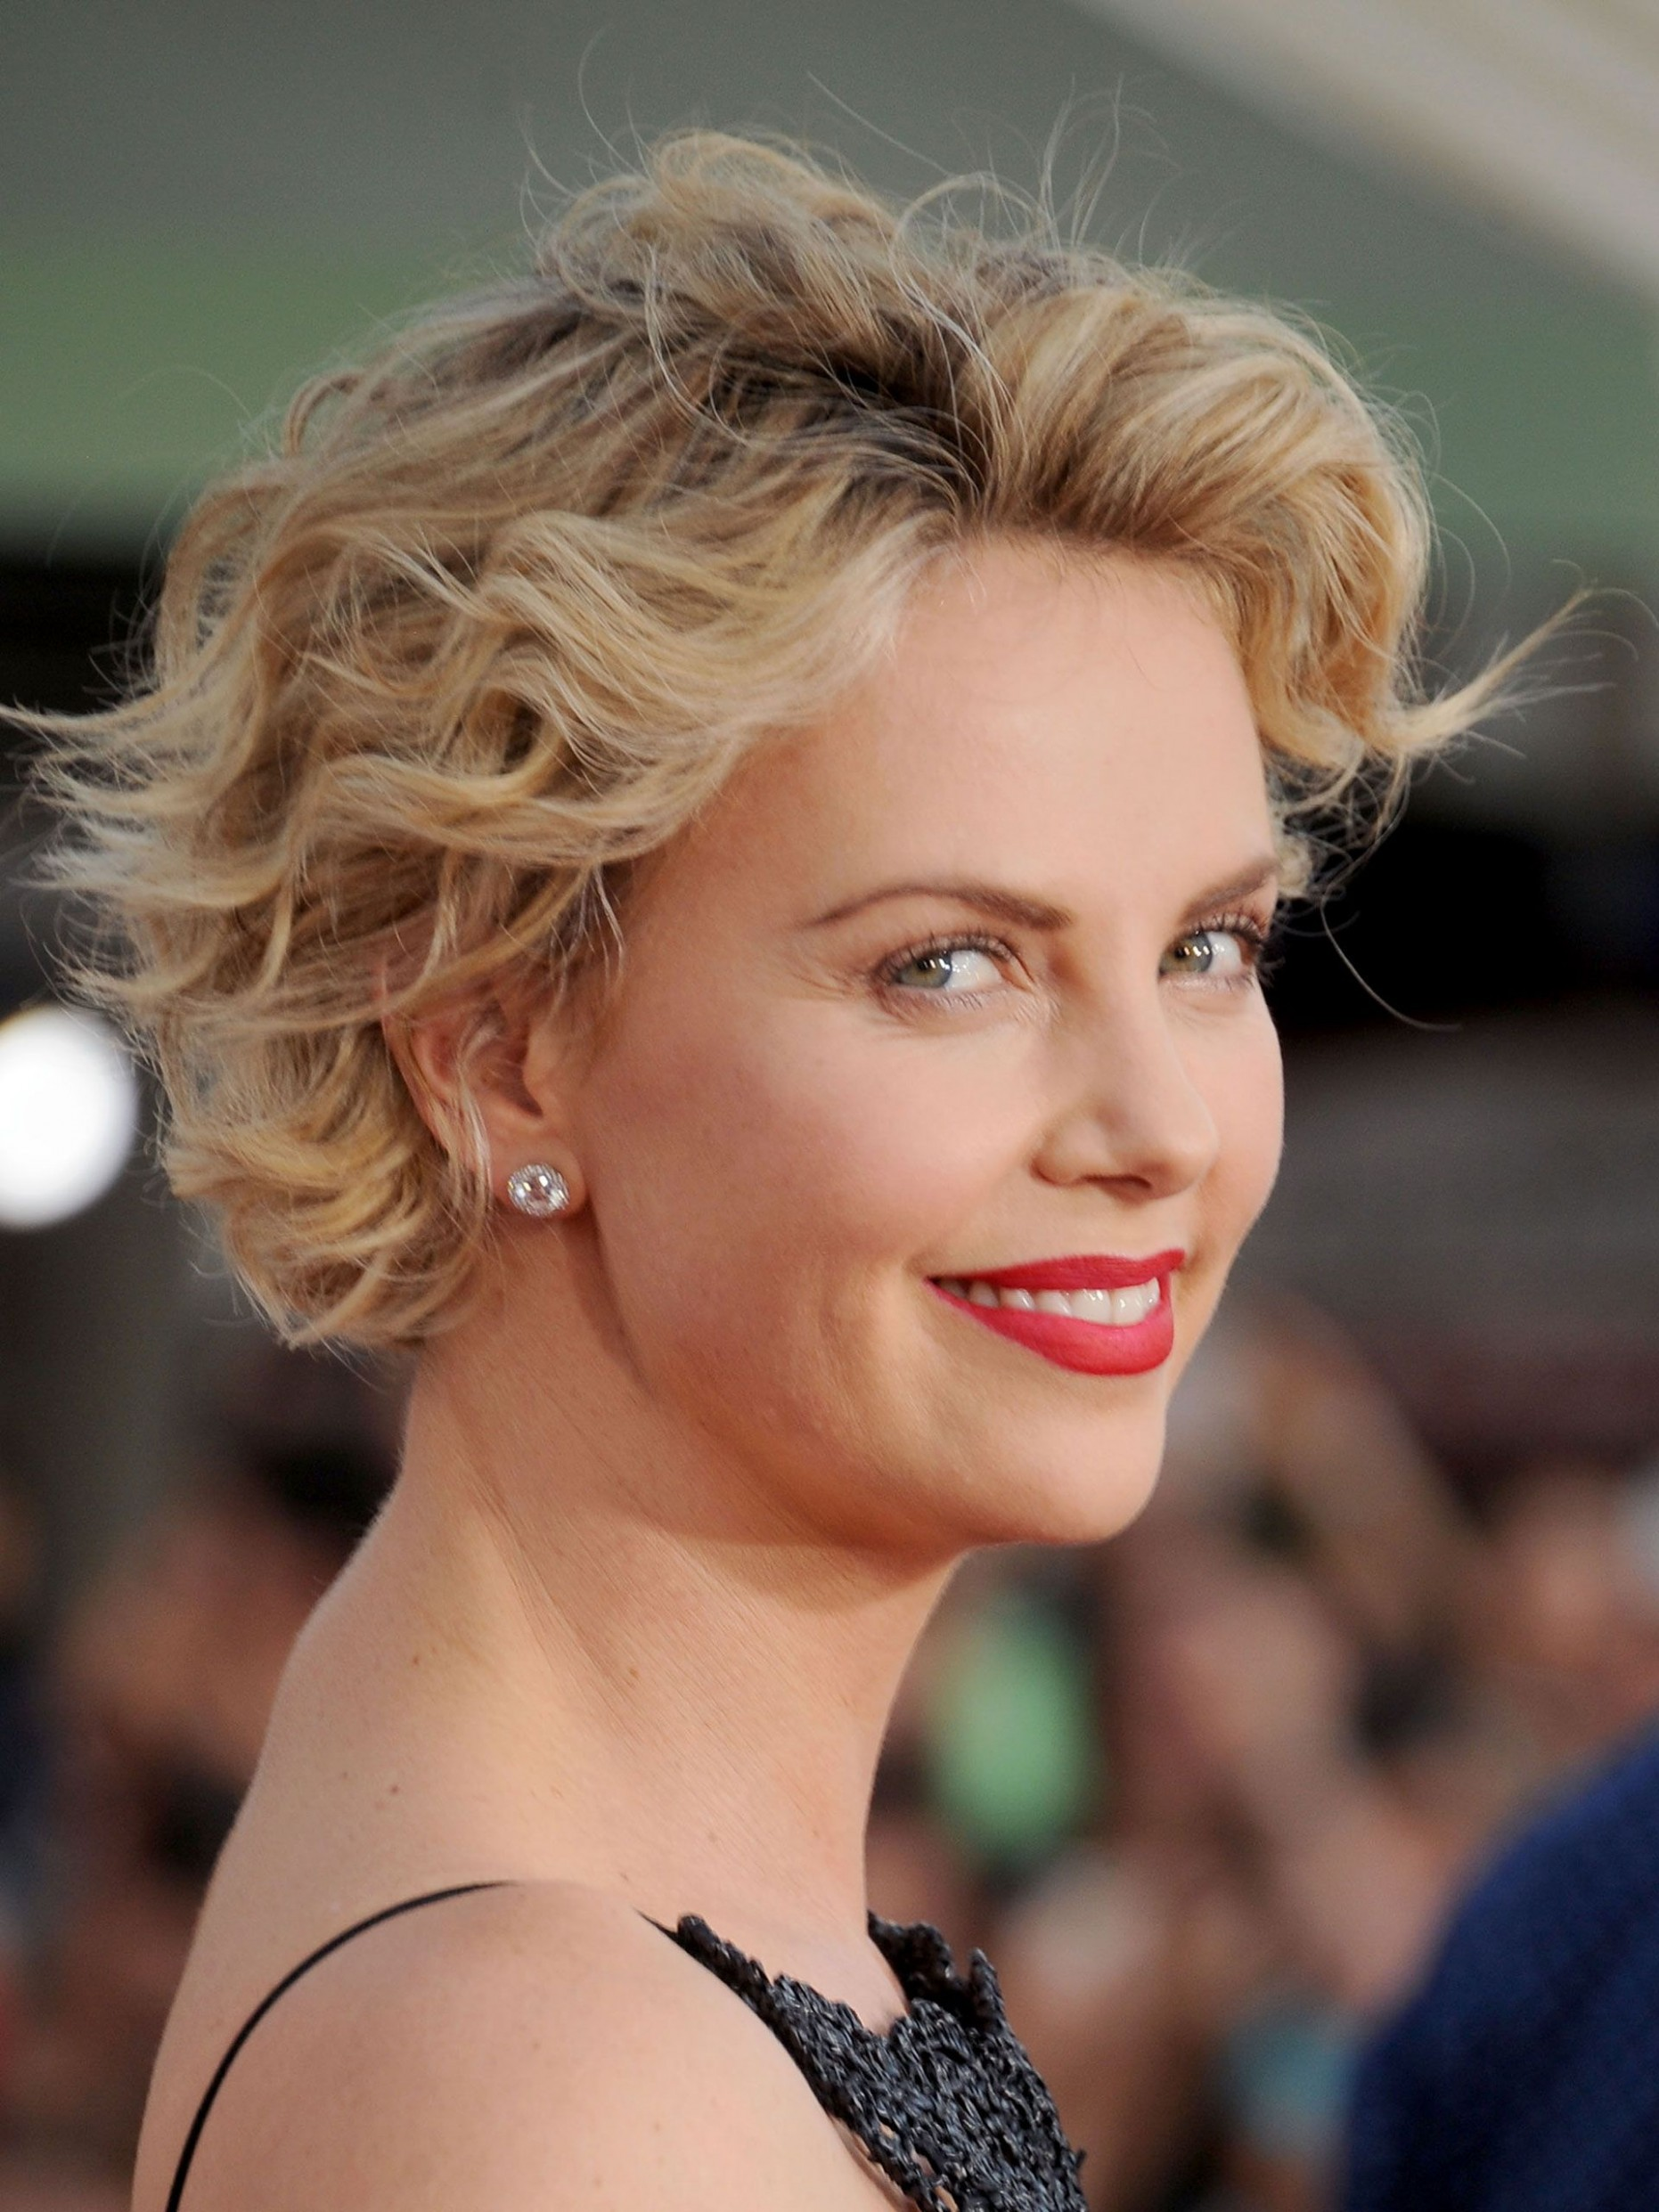 How To Grow Out Your Hair Celebs Growing Out Short Hair Transition Hairstyles For Growing Out Short Hair